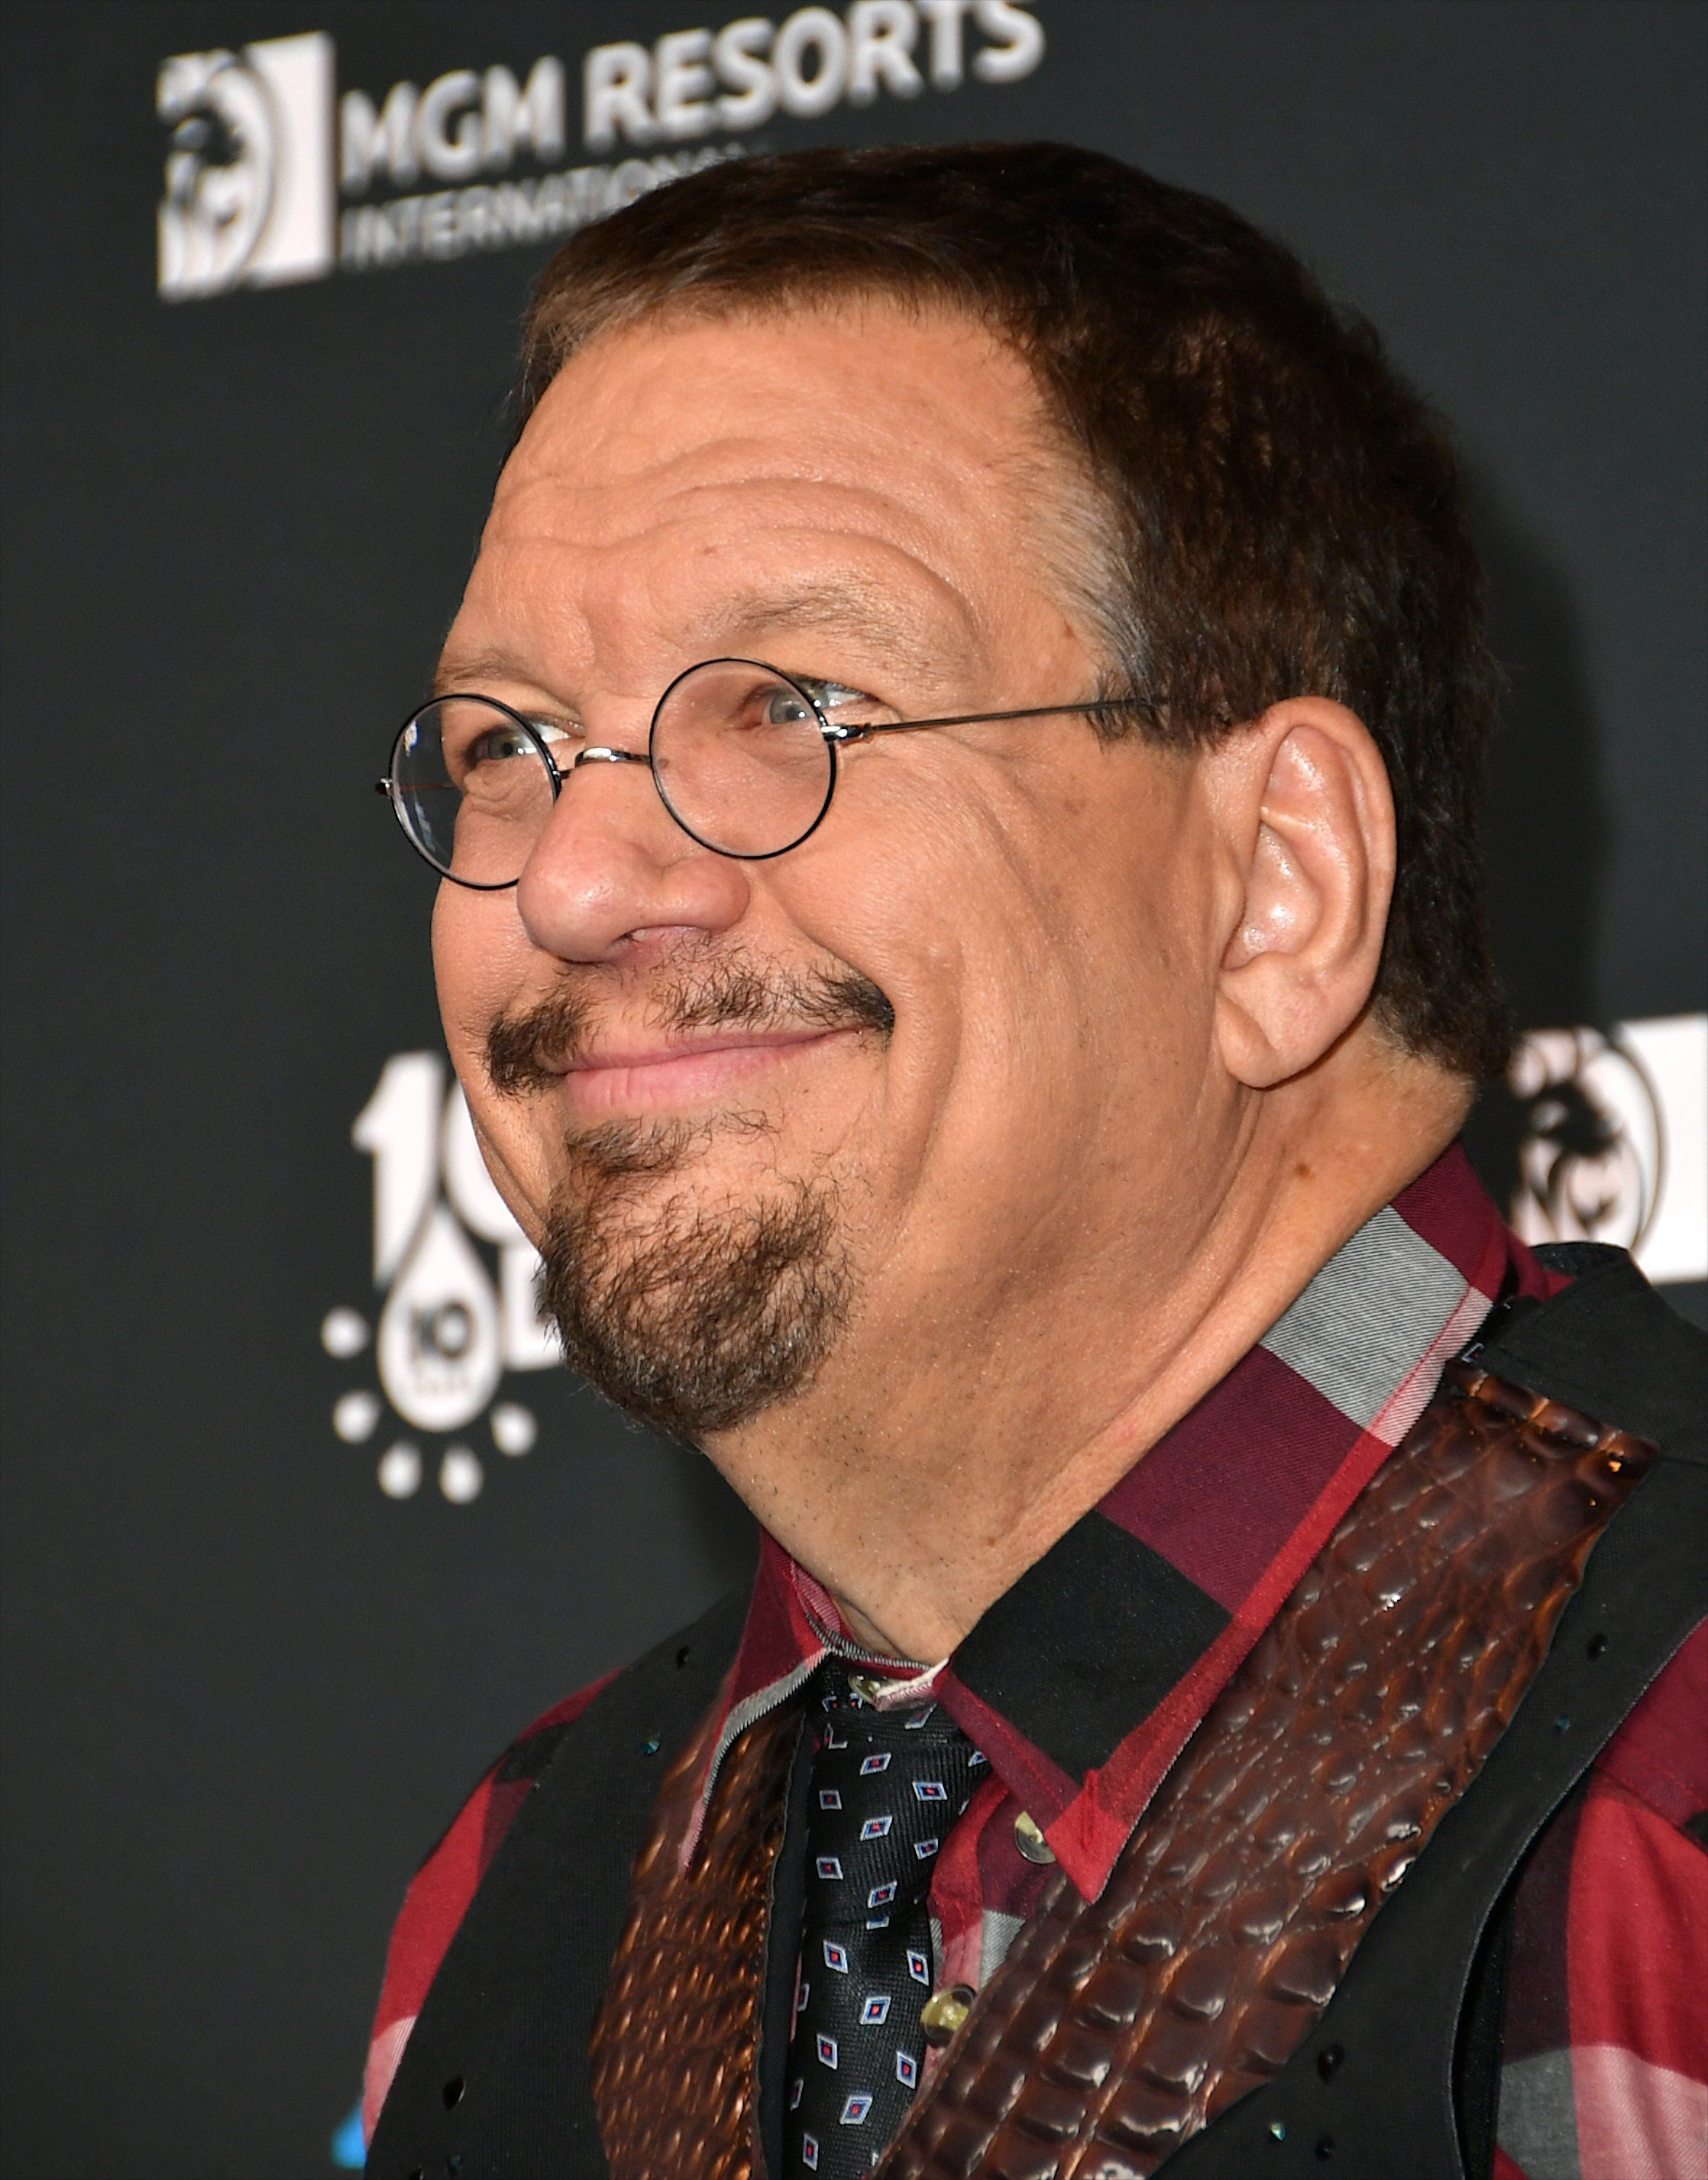 Penn Jillette Says He Heard Donald Trump Say Racially Insensitive Things